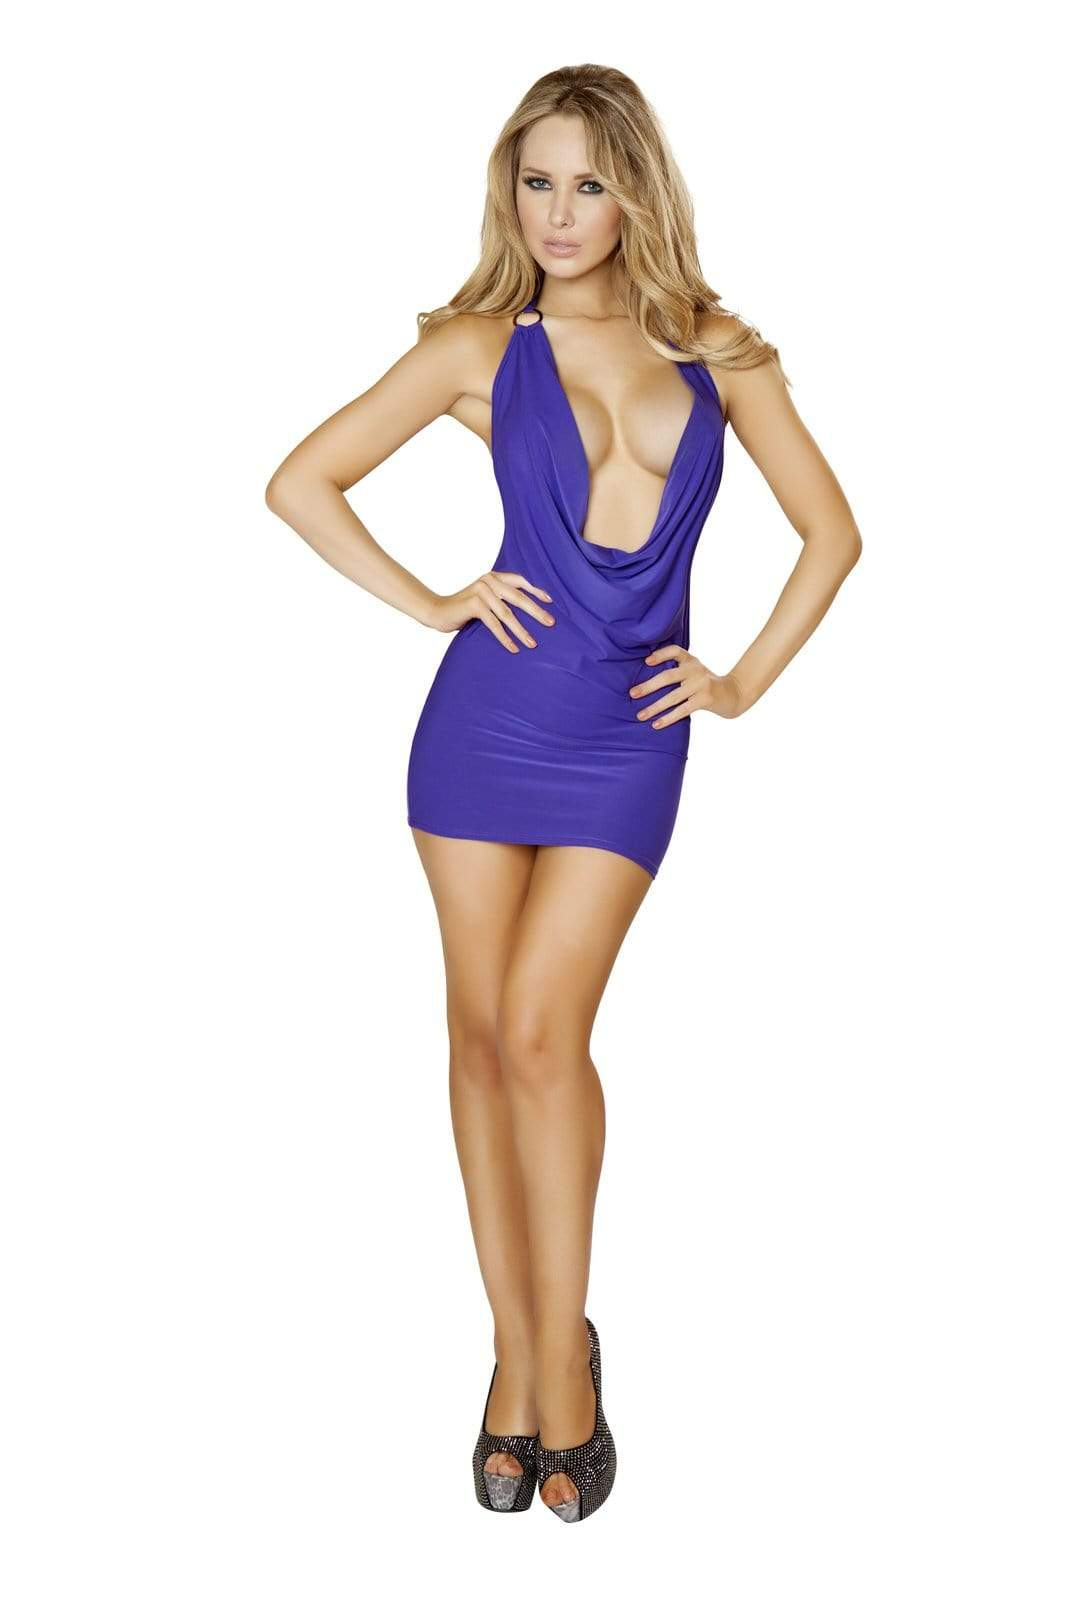 Roma S/M / Purple Purple O-Ring Plunge Cowl Neck Open Back Cocktail Party Mini Dress (Many colors available) SHC-3131-PURPLE-S/M-R Sexy Purple O-Ring Plunge Cowl Neck Party Mini Dress Roma 3131 | SHOP NOW Apparel & Accessories > Clothing > Dresses